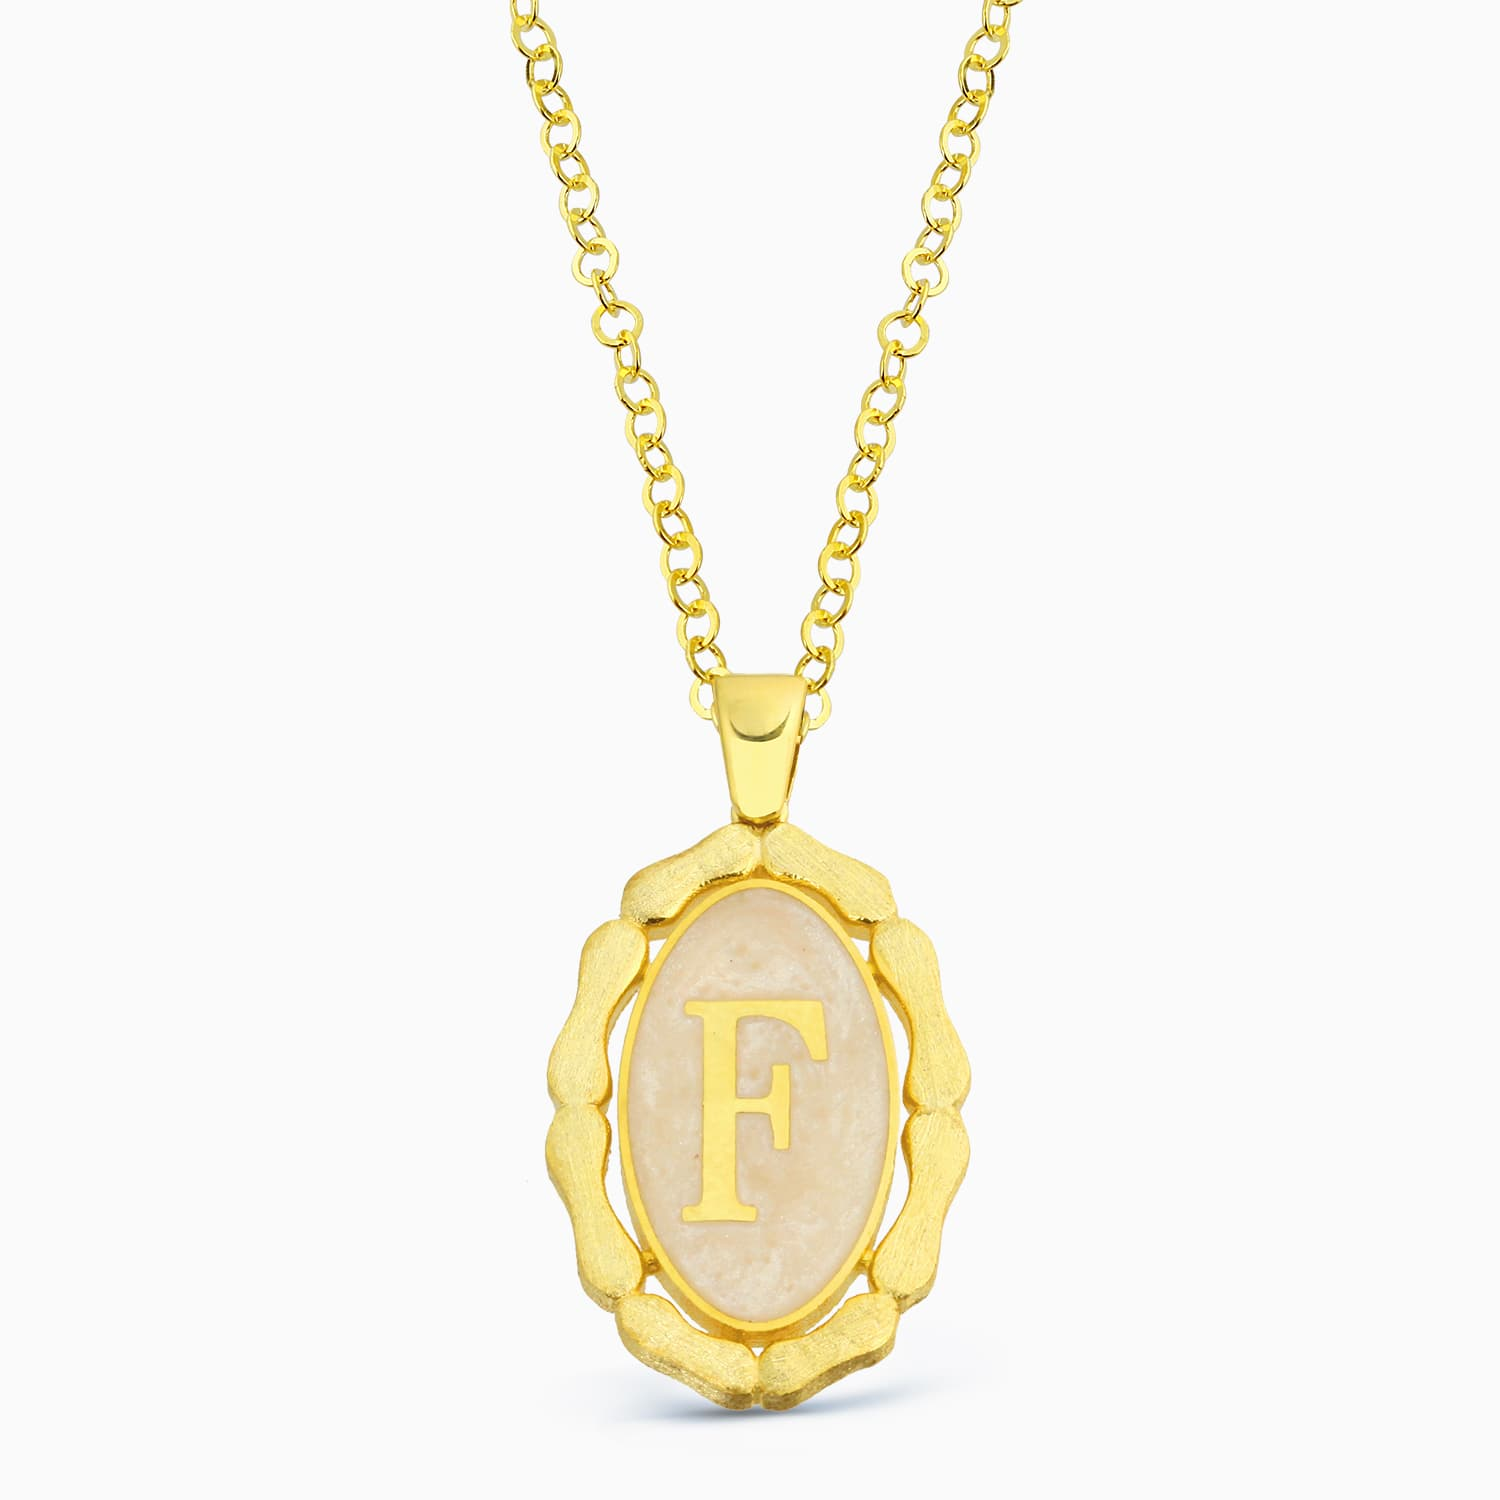 LETTER F MINNED NECKLACE